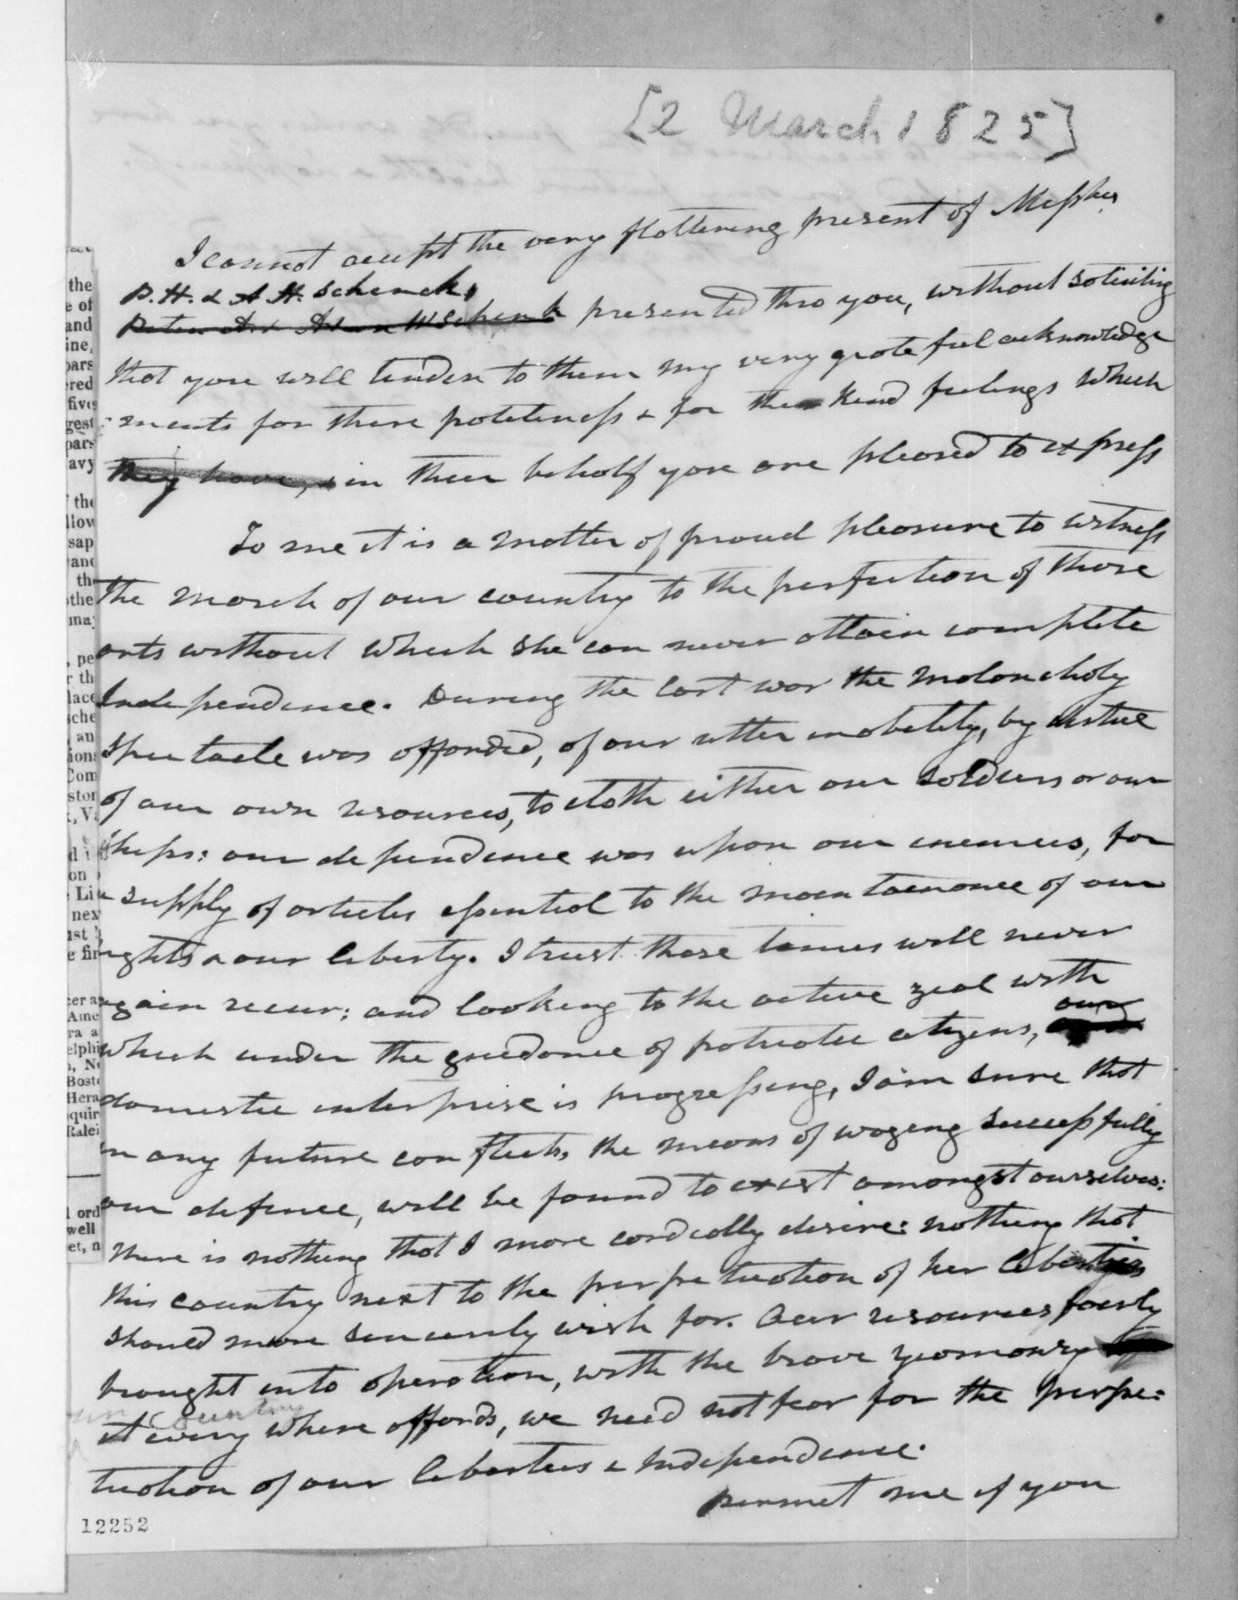 Andrew Jackson to Hector Craig, March 2, 1825